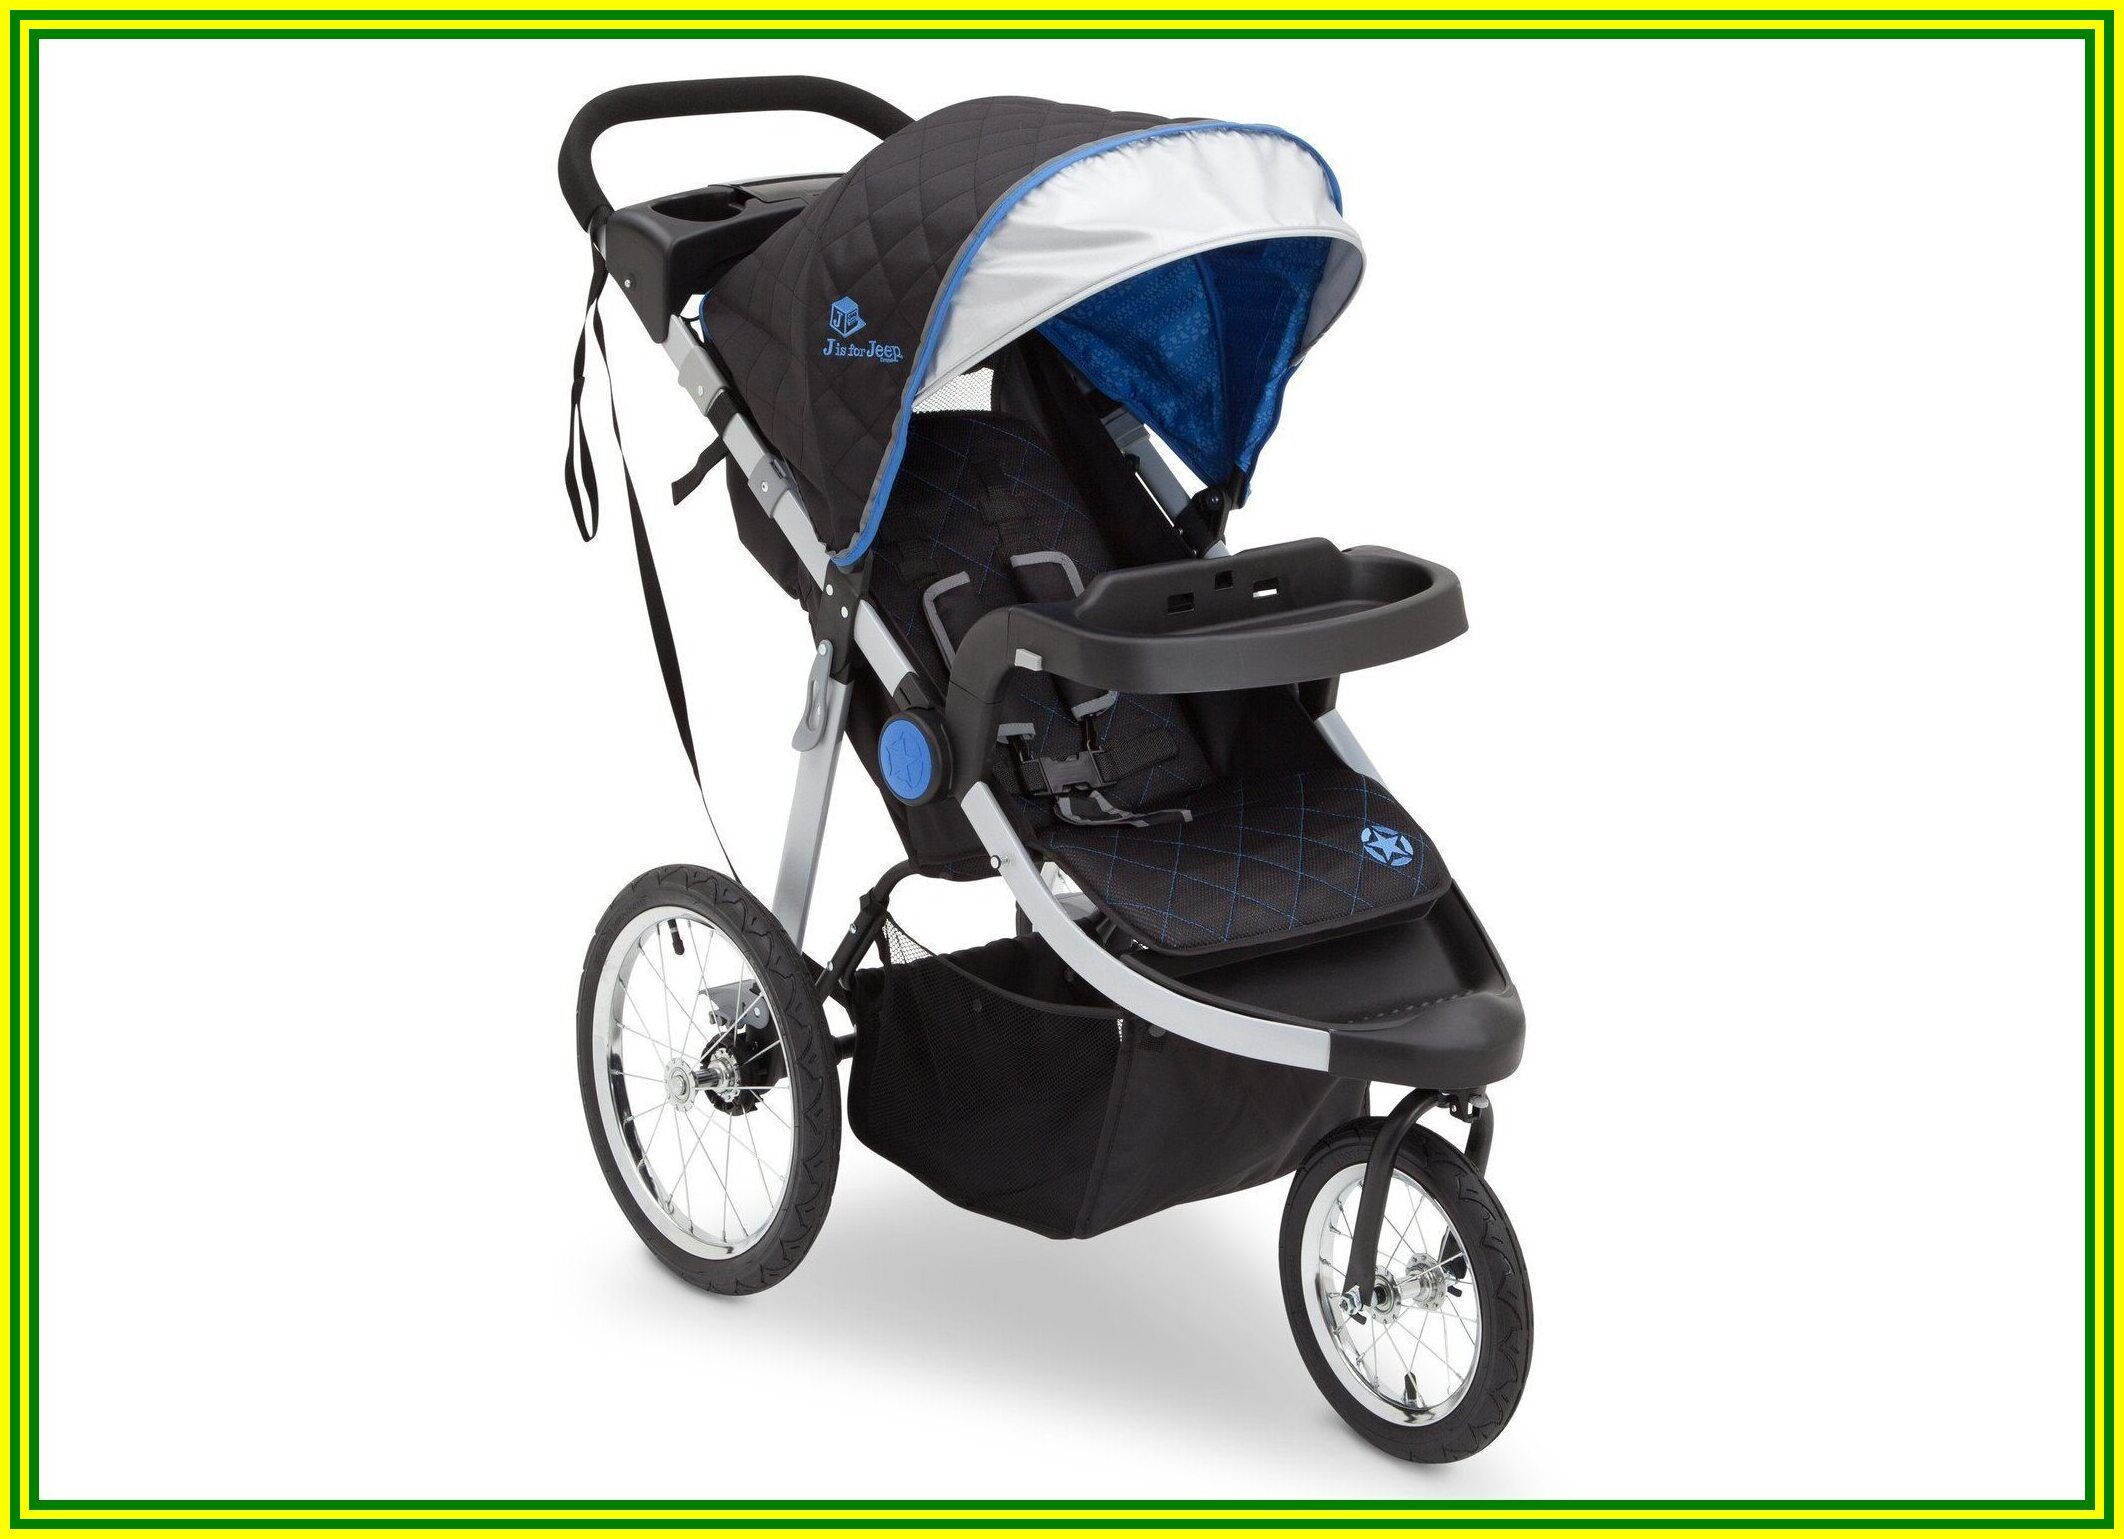 51 reference of jeep brand jogging stroller in 2020